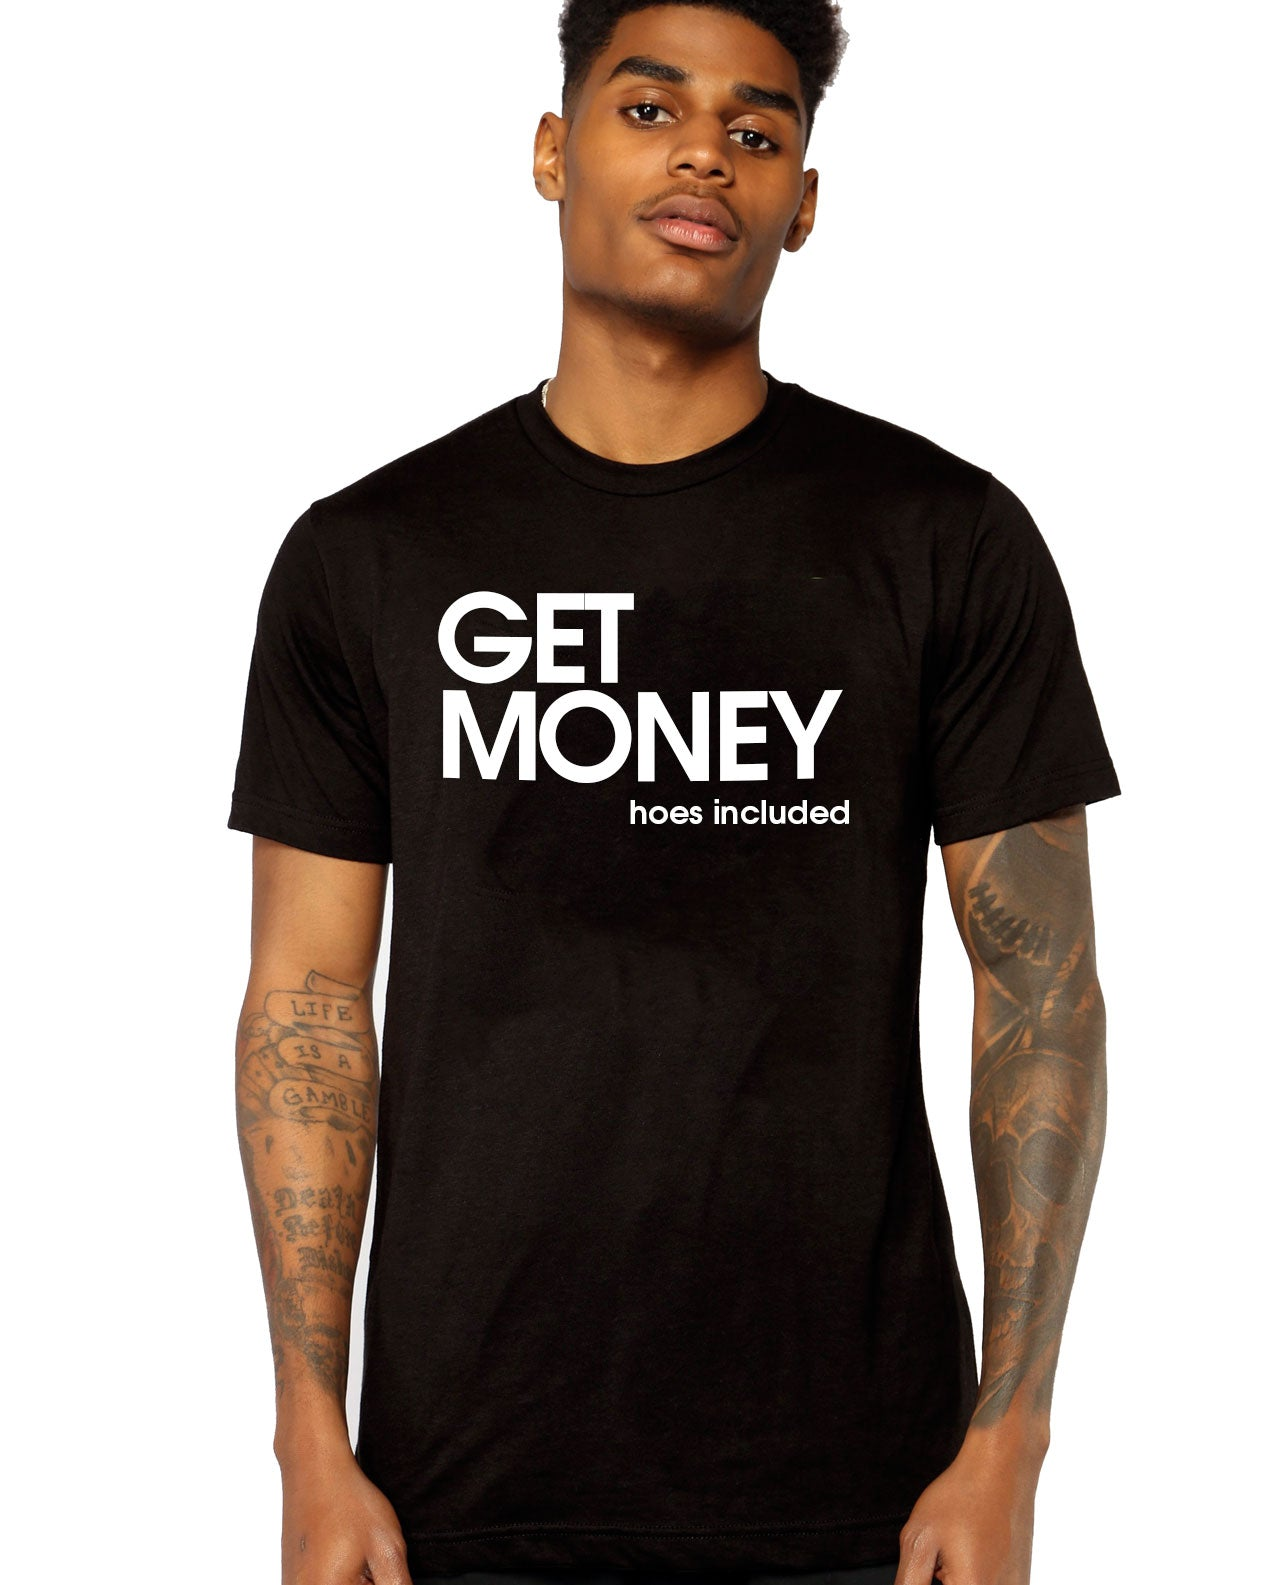 Get Money Tee- Luxury Brand LA - Luxury Brand LA - Shop Latest Trends and Hottest Apparel from Luxury Brand LA